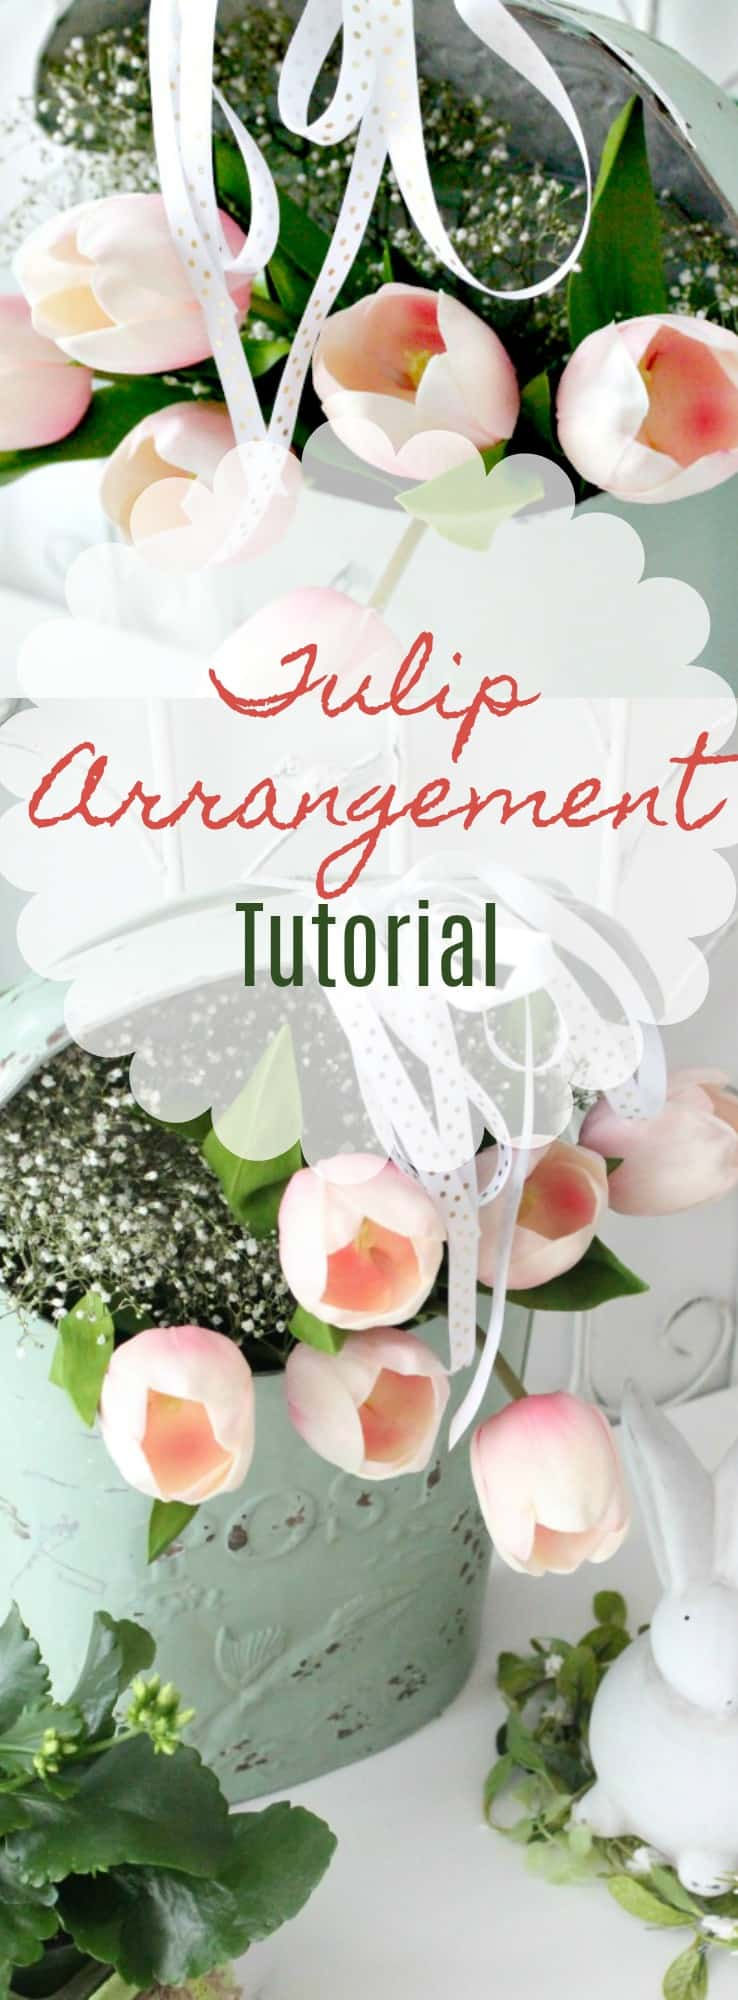 Spring wreath Tulip Arrangement Ideas, flower arrangement images, easy florist, tulip flower, tulip flower arrangements, easy flowers, pink tulips, white tulips, diy spring flower arrangements, spring flowers, flower decoration,